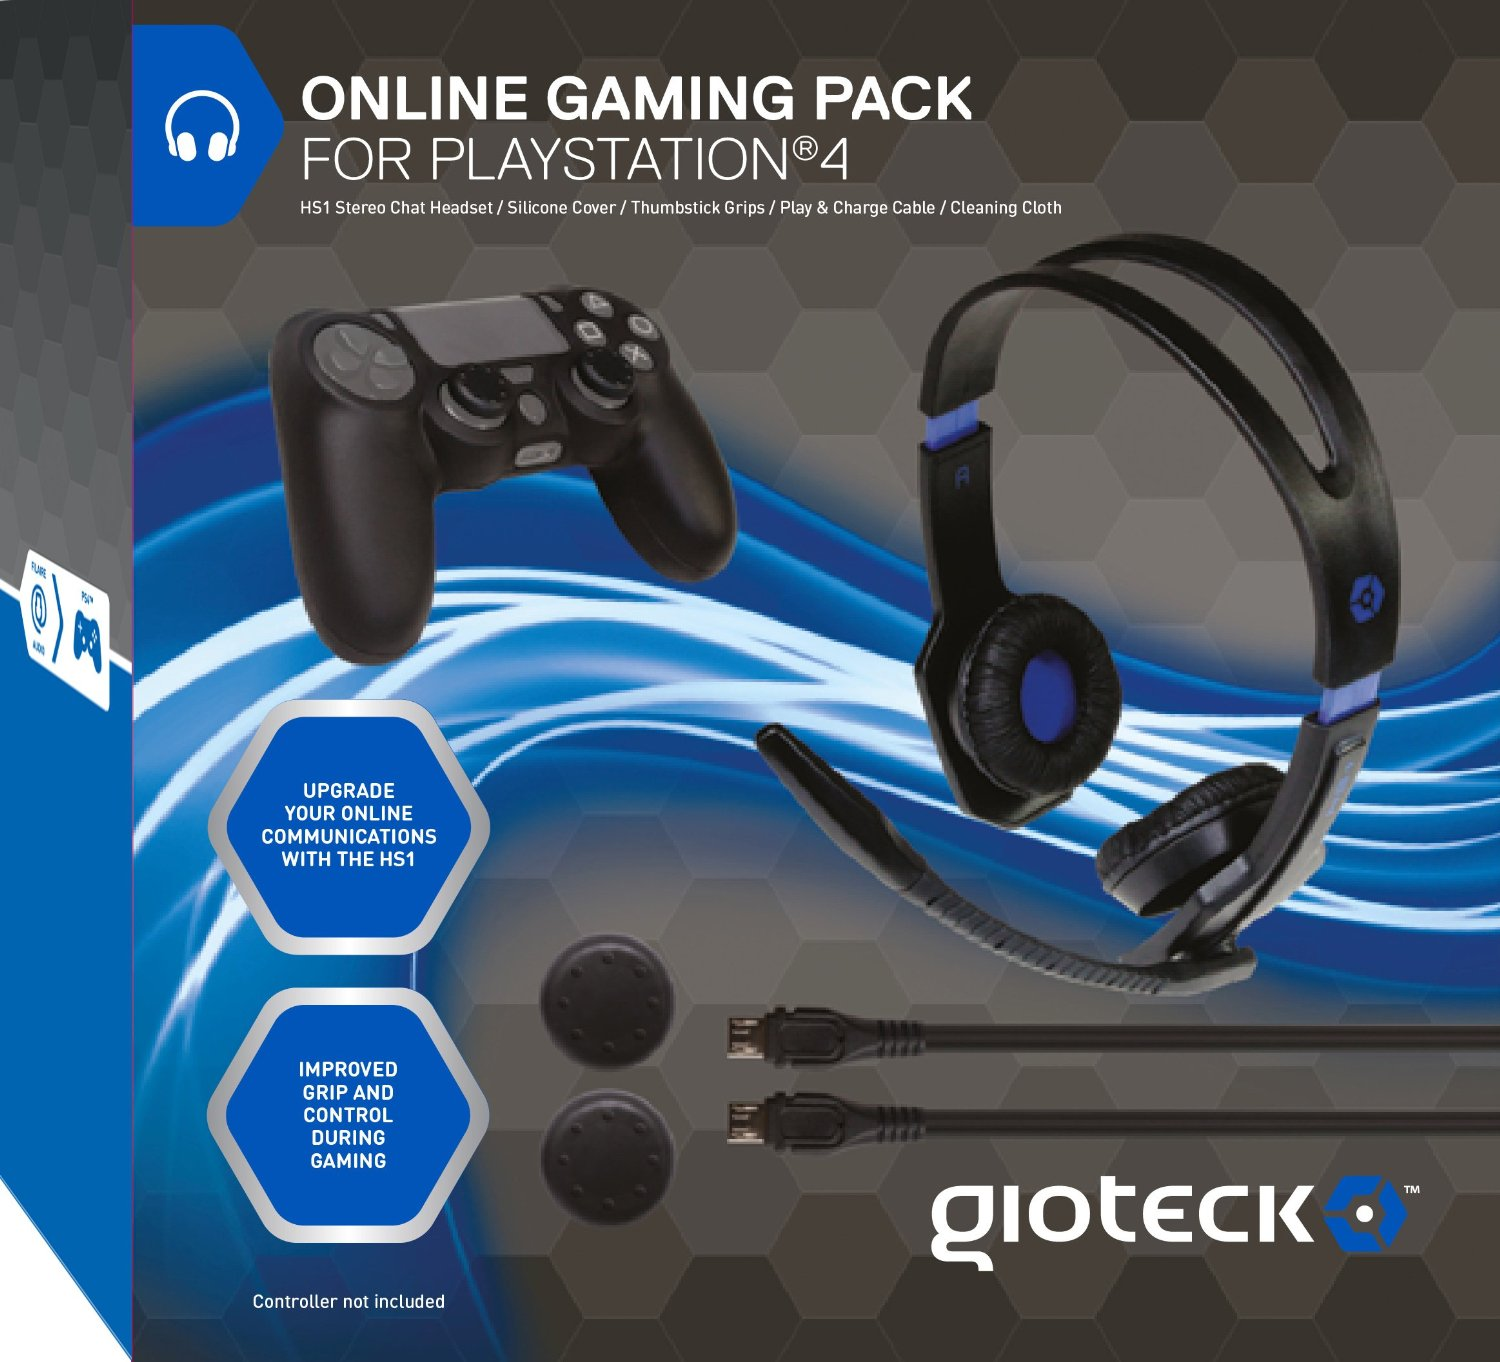 gioteck rc5 gaming chair galvanized metal chairs details and images listed for professional